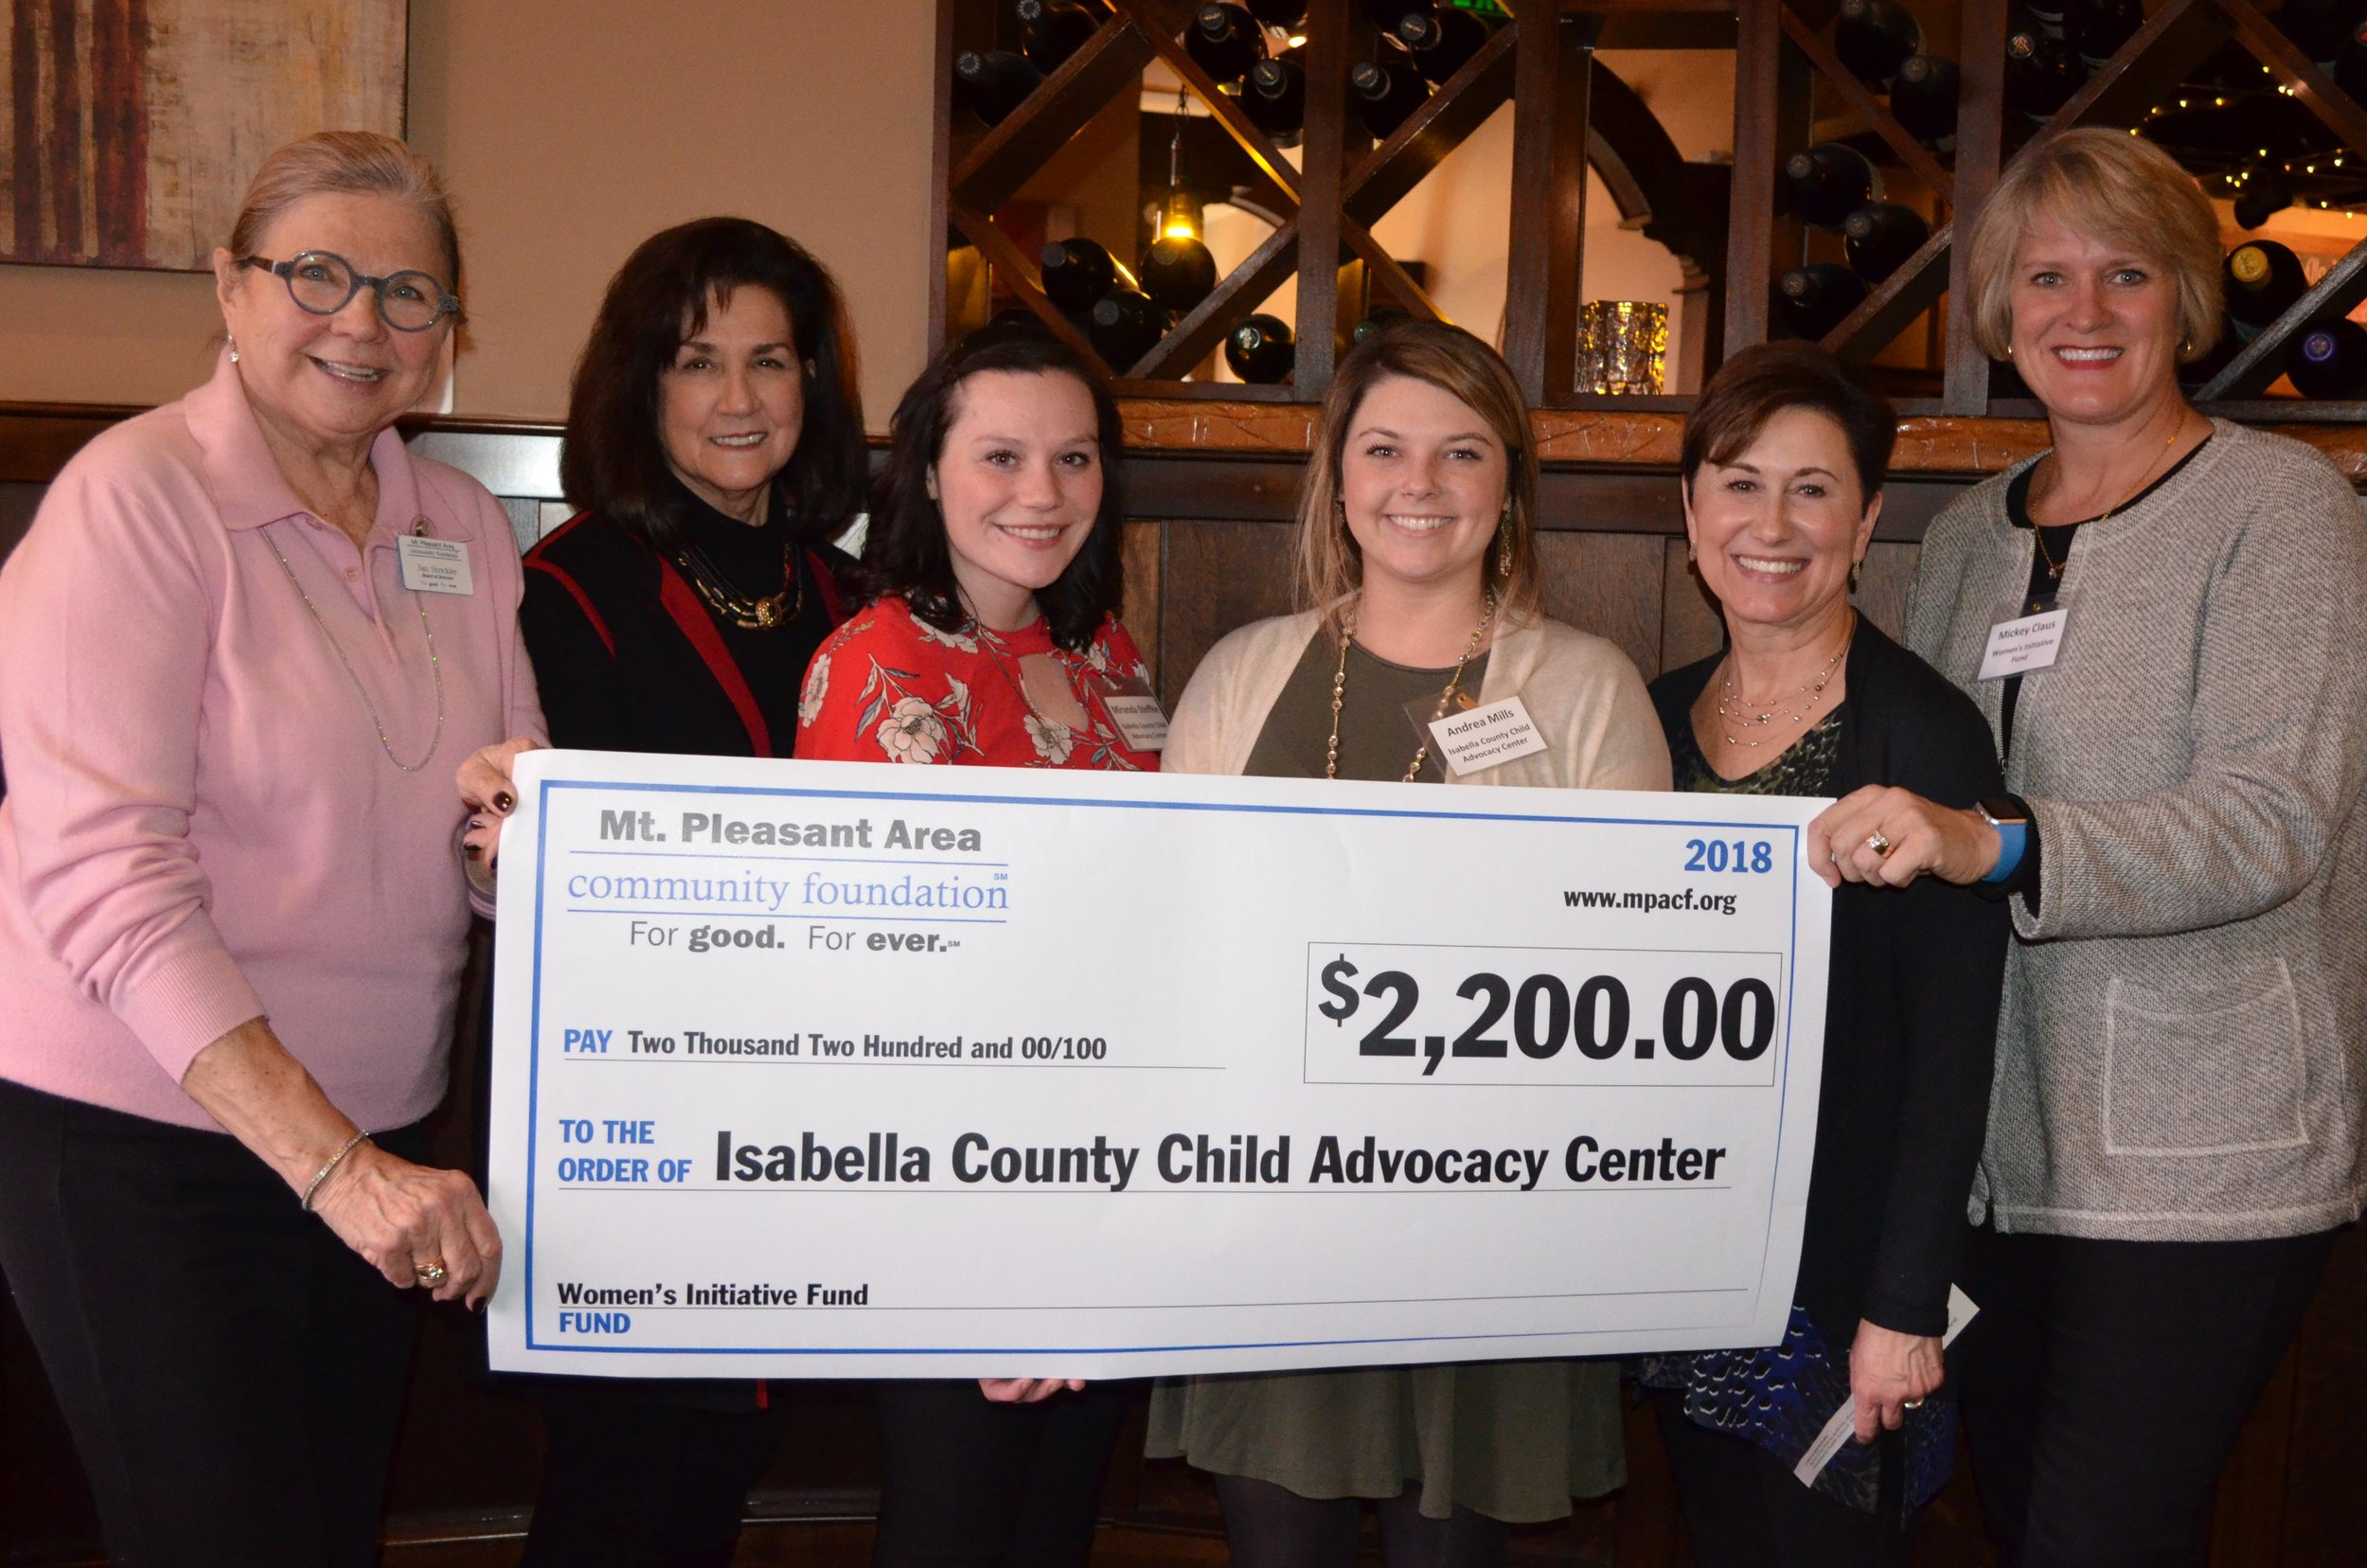 Members of the Women's Initiative Committee present a check to representatives of the Isabella County Child advocacy Center.